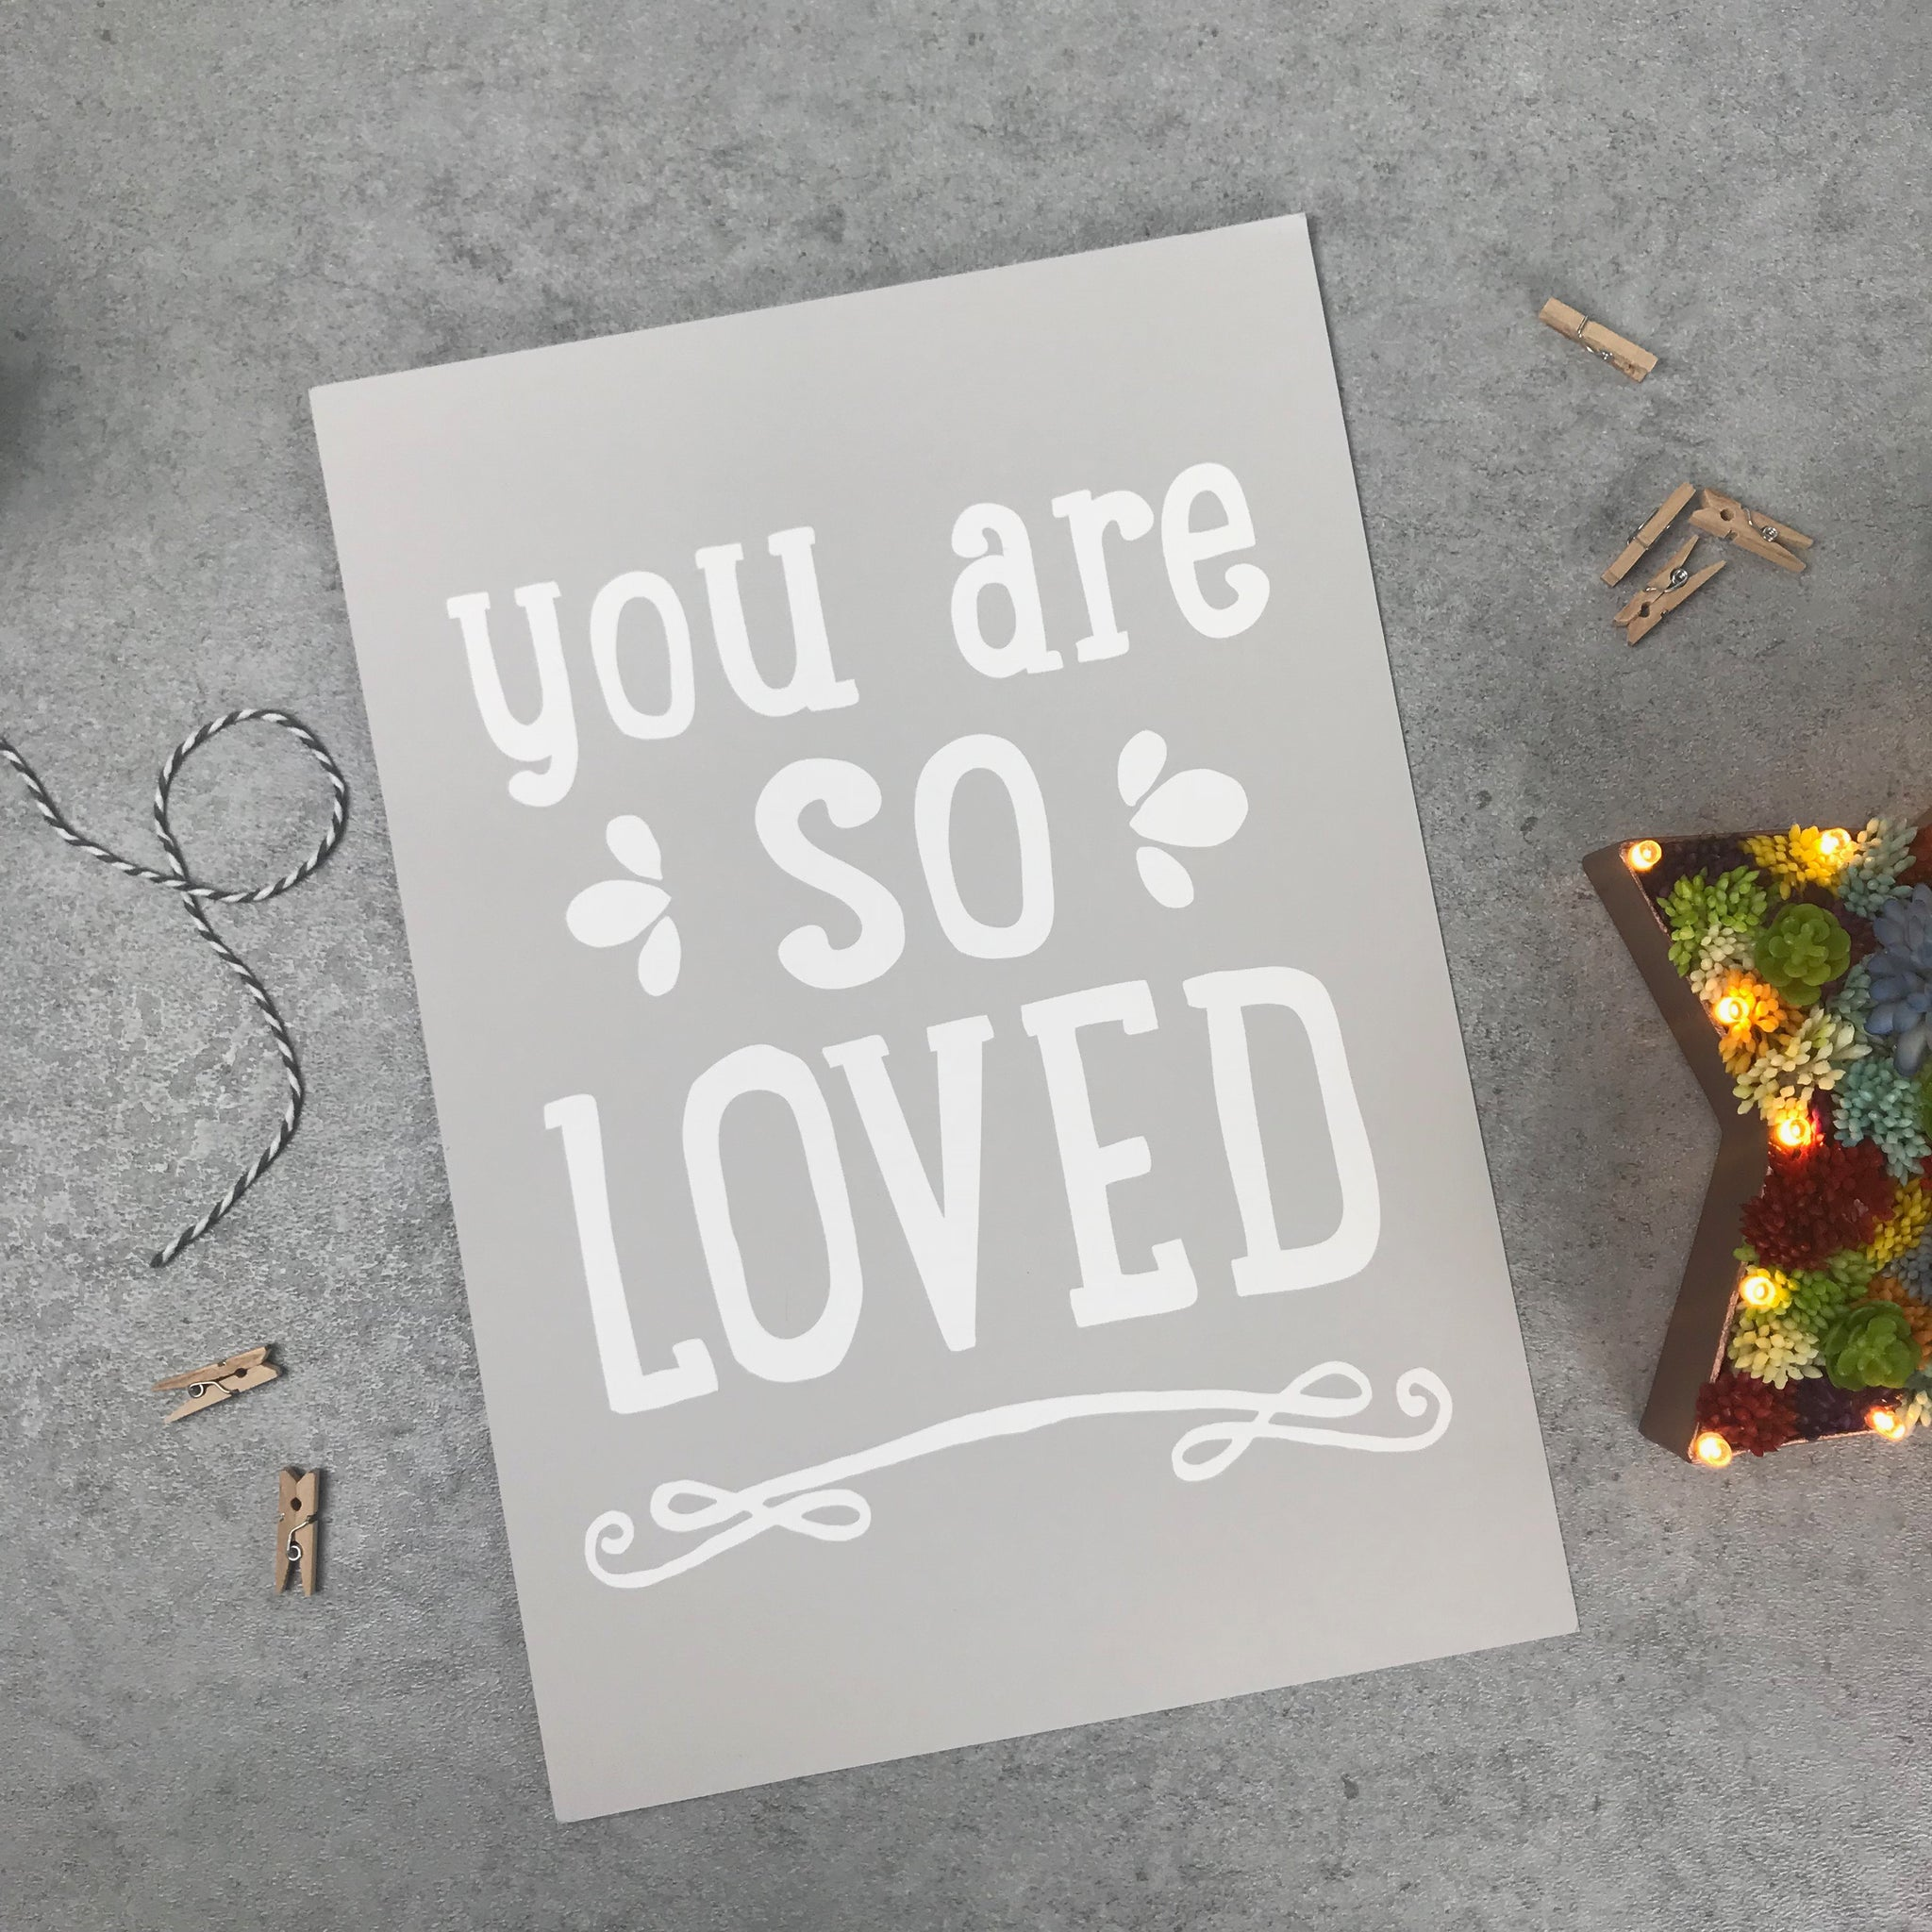 Seconds: You are so loved A4 print